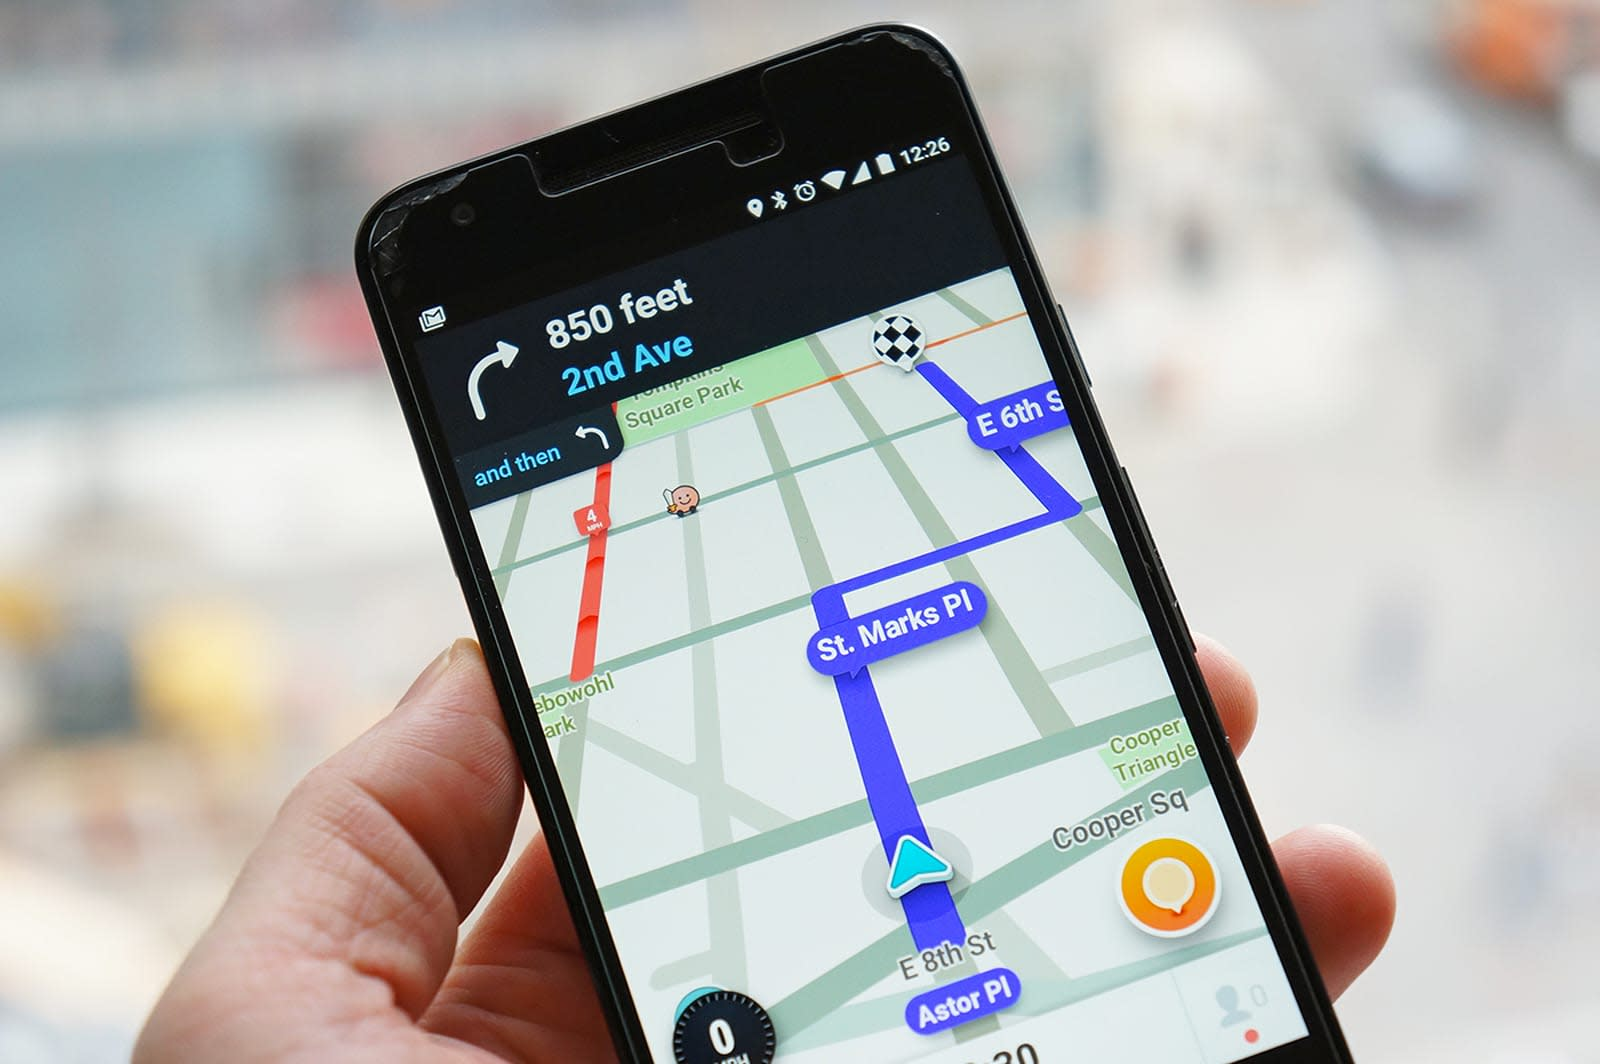 Waze sends real-time accident data to drivers and first